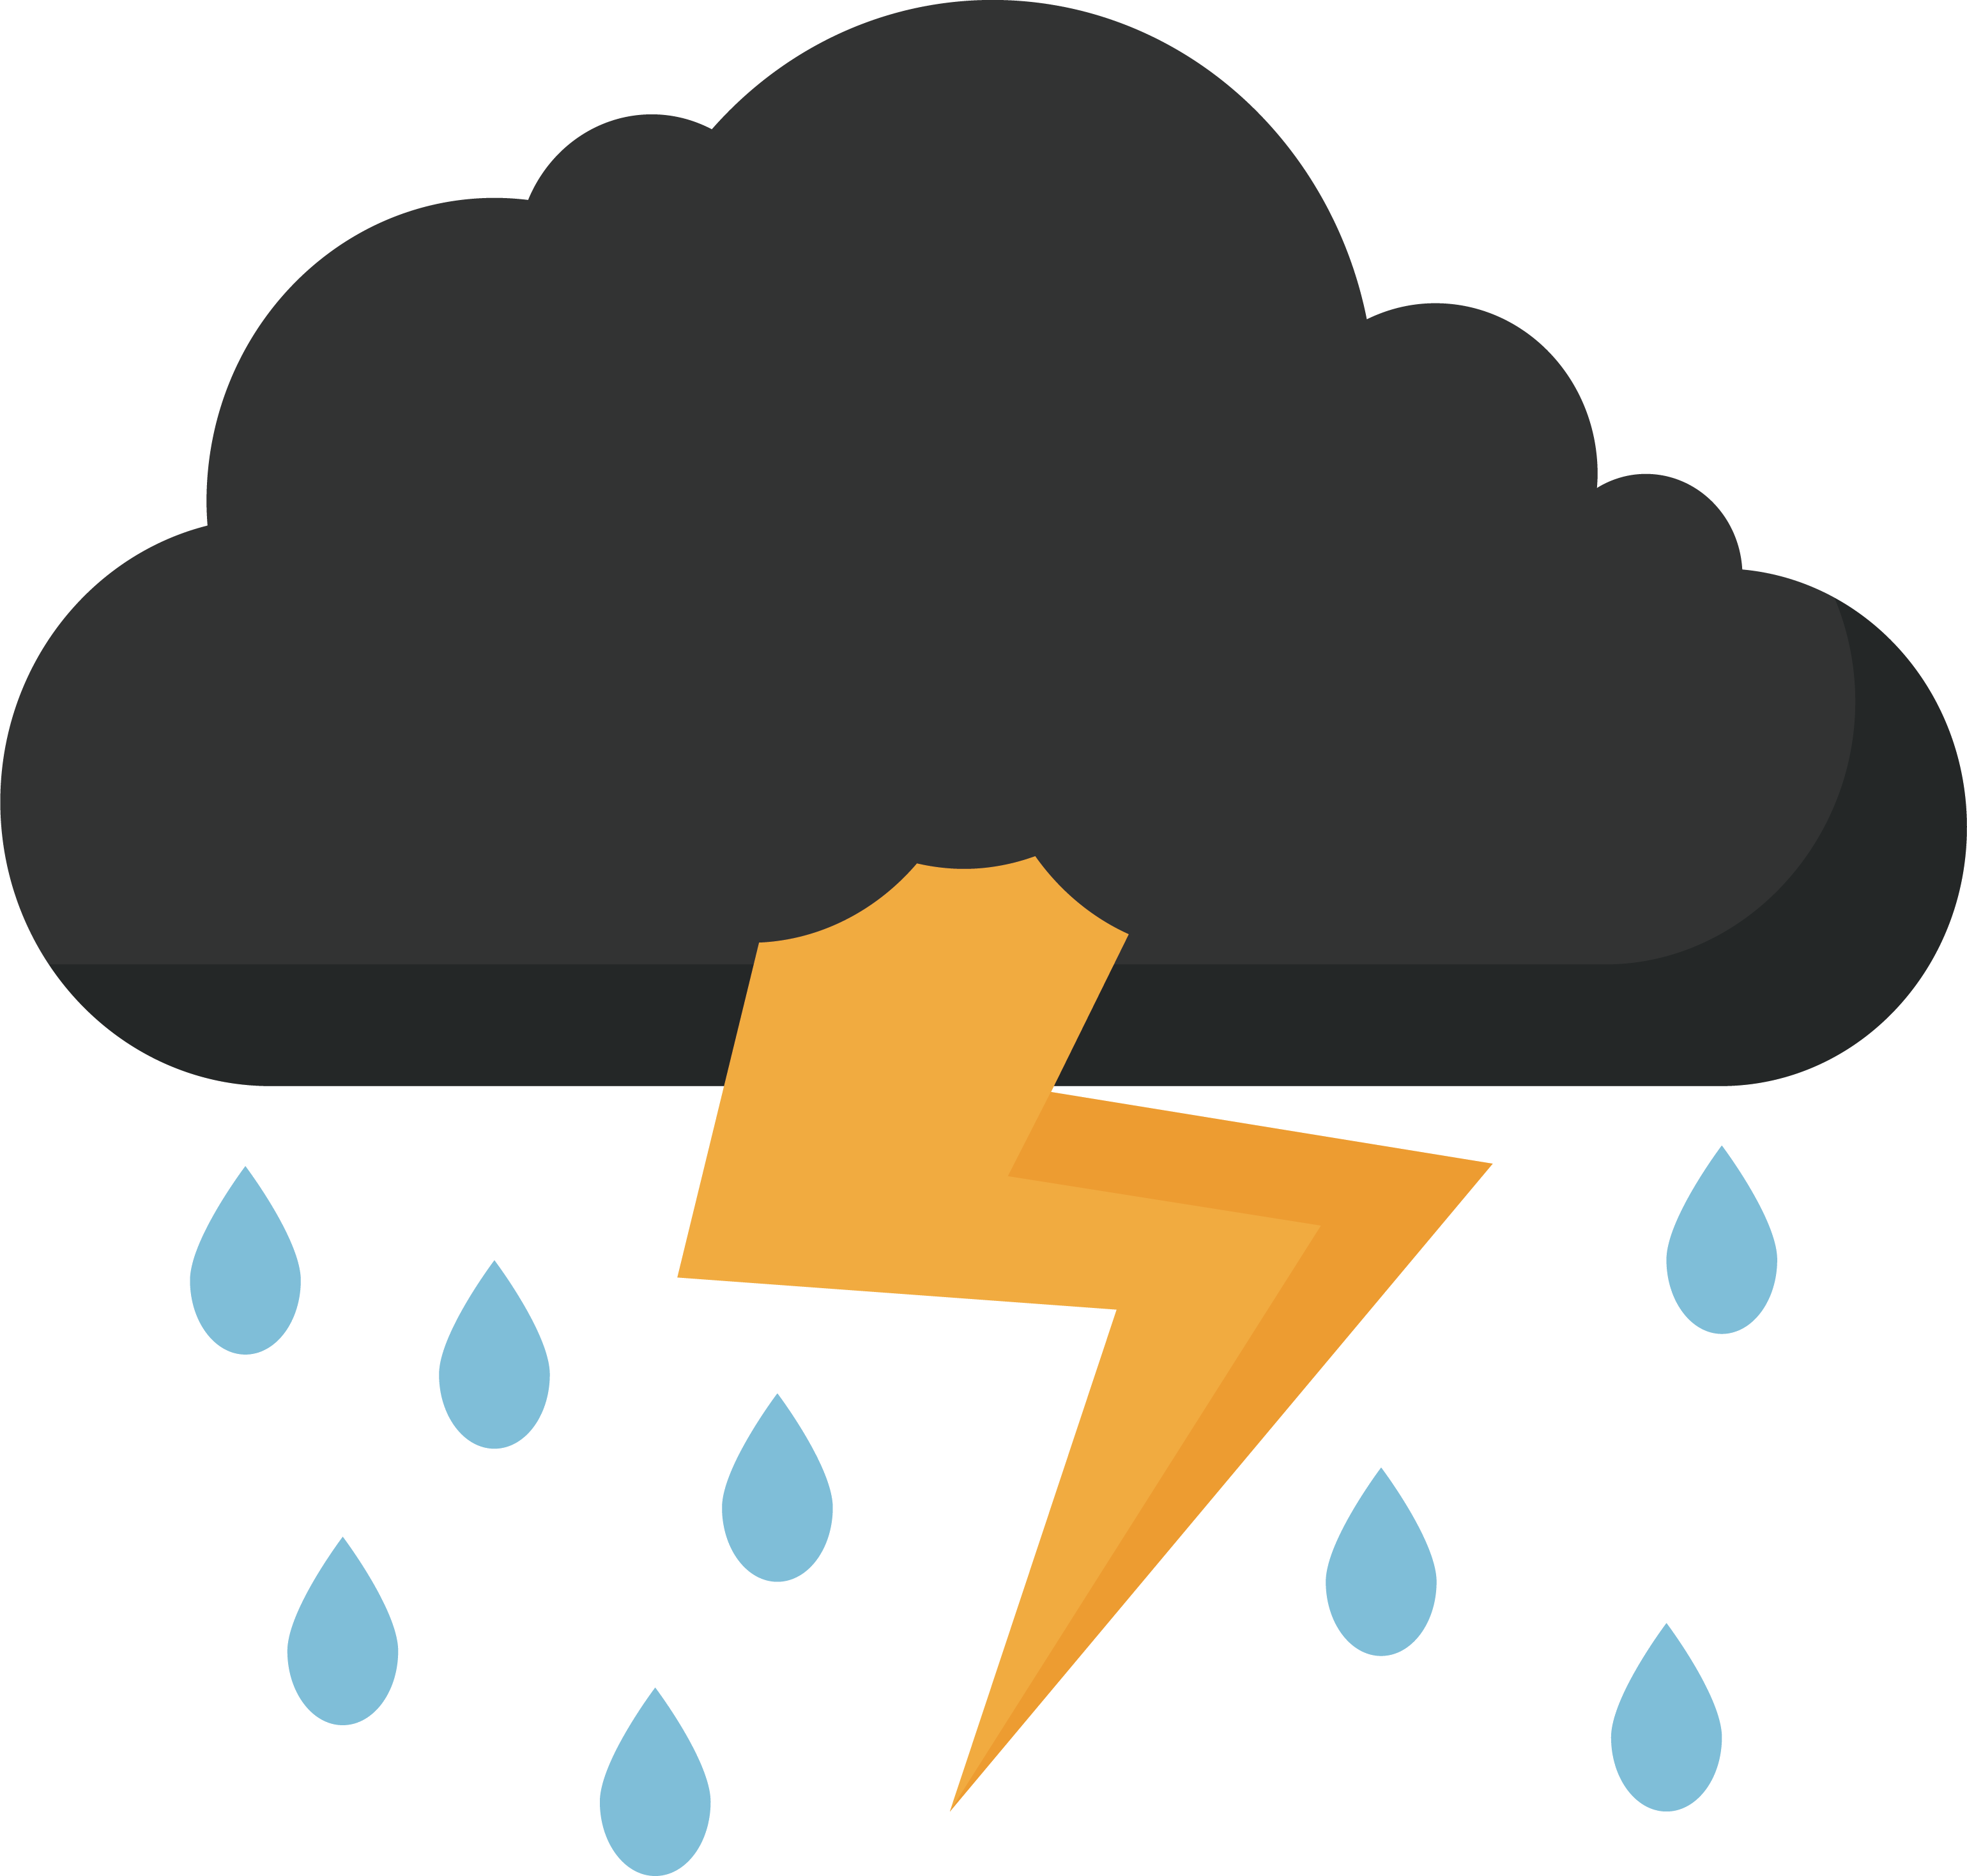 Lightning Best Hd Clipart Thunder Images Transparent Png.